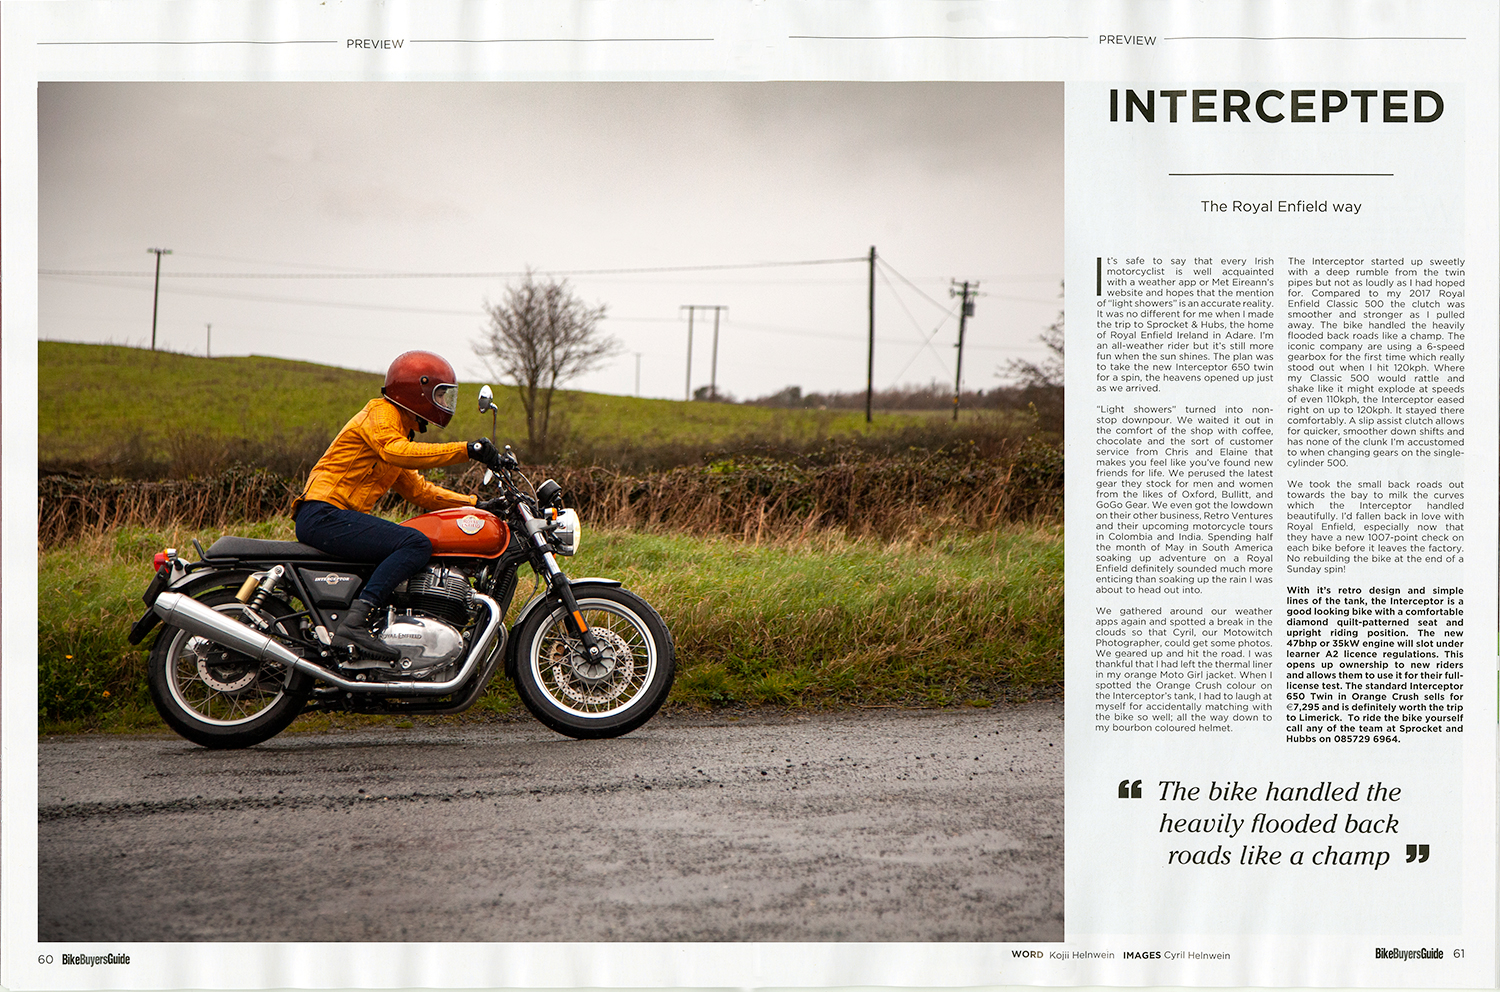 Published article: Review of Royal Enfield Interceptor 650 written by Kojii Helnwein published in Bike Buyers Guide magazine May 2019. Photography by Cyril Helnwein